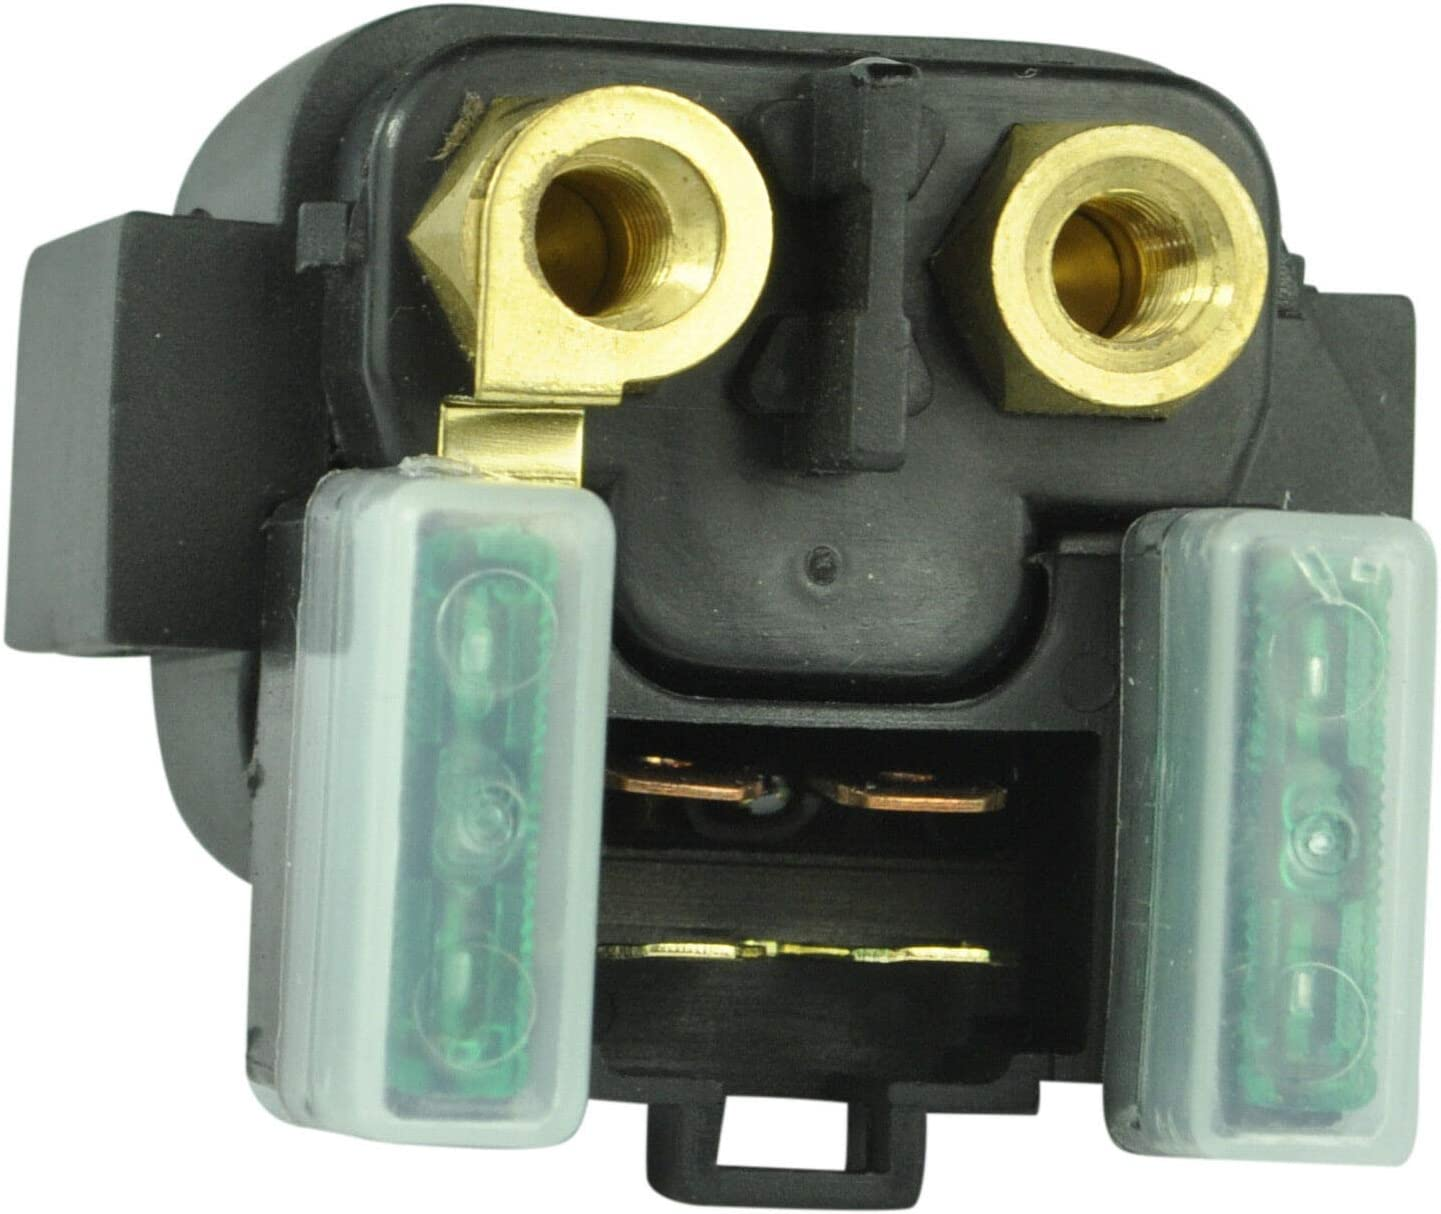 Starter Relay Solenoid Replacement for quality assurance YFZ450 Popular shop is the lowest price challenge YFZ 450 Yamaha 200